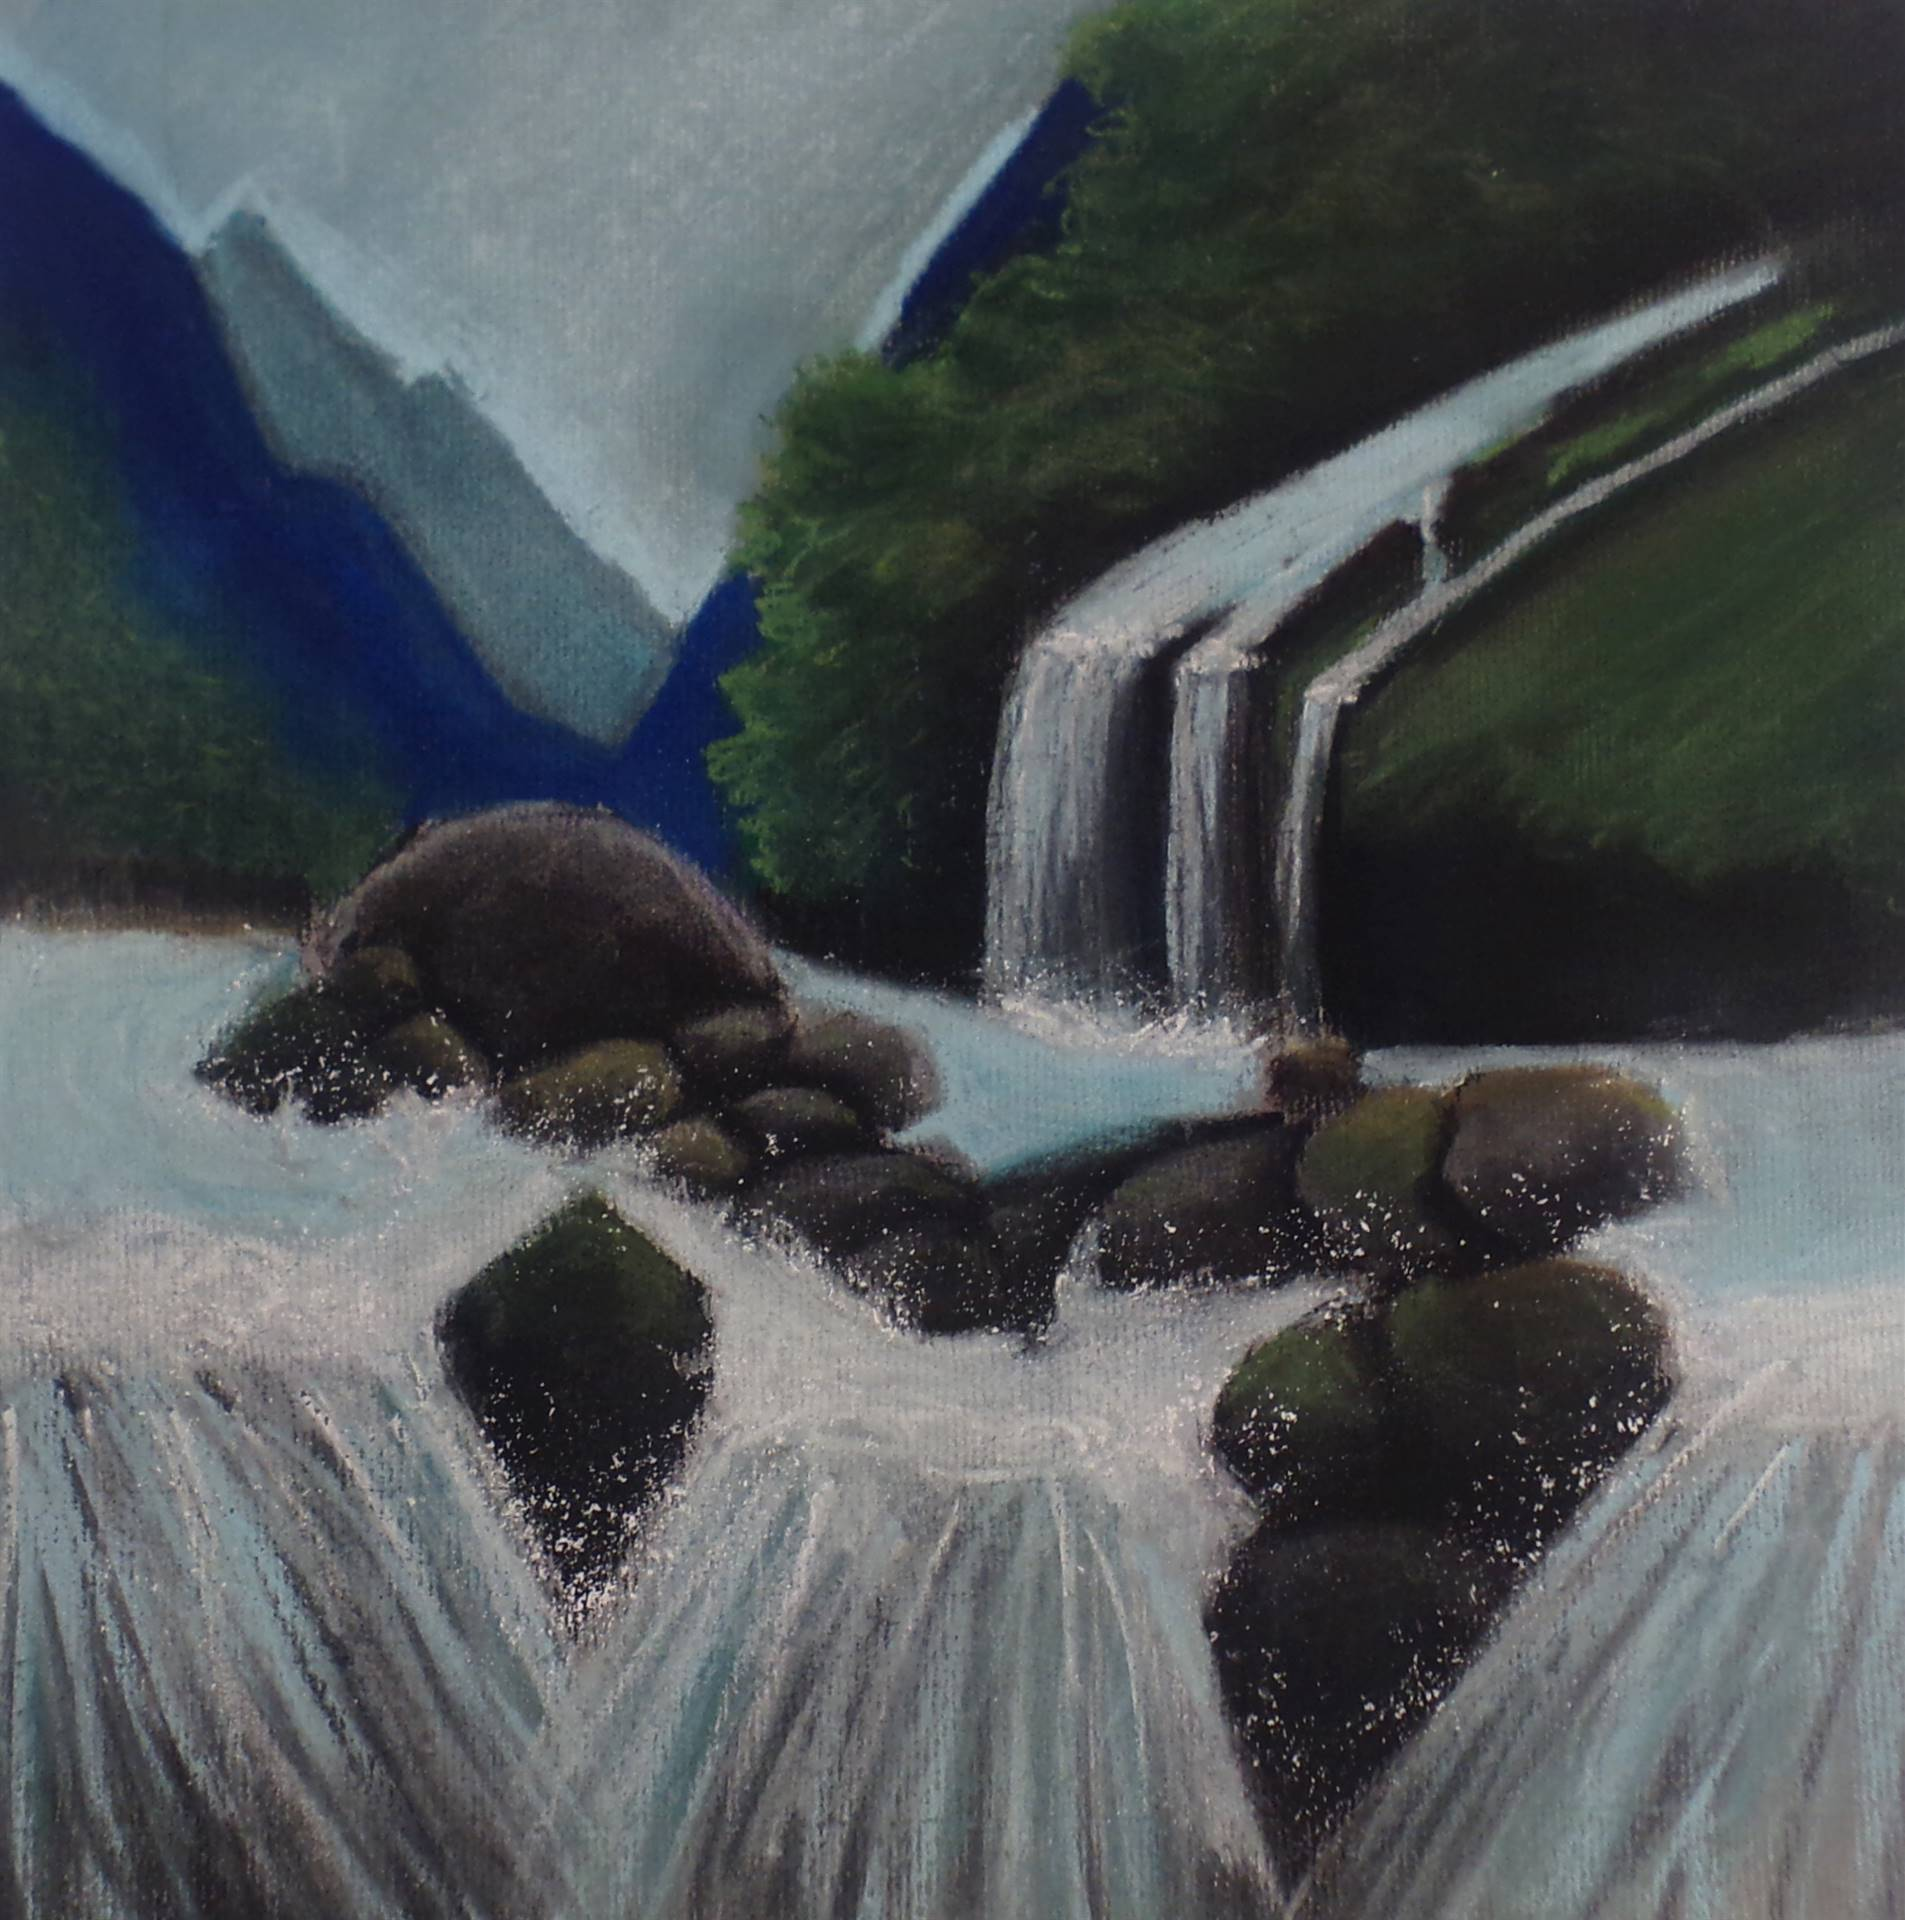 Pastel drawing of a river flowing down over rocks with mountains in the background